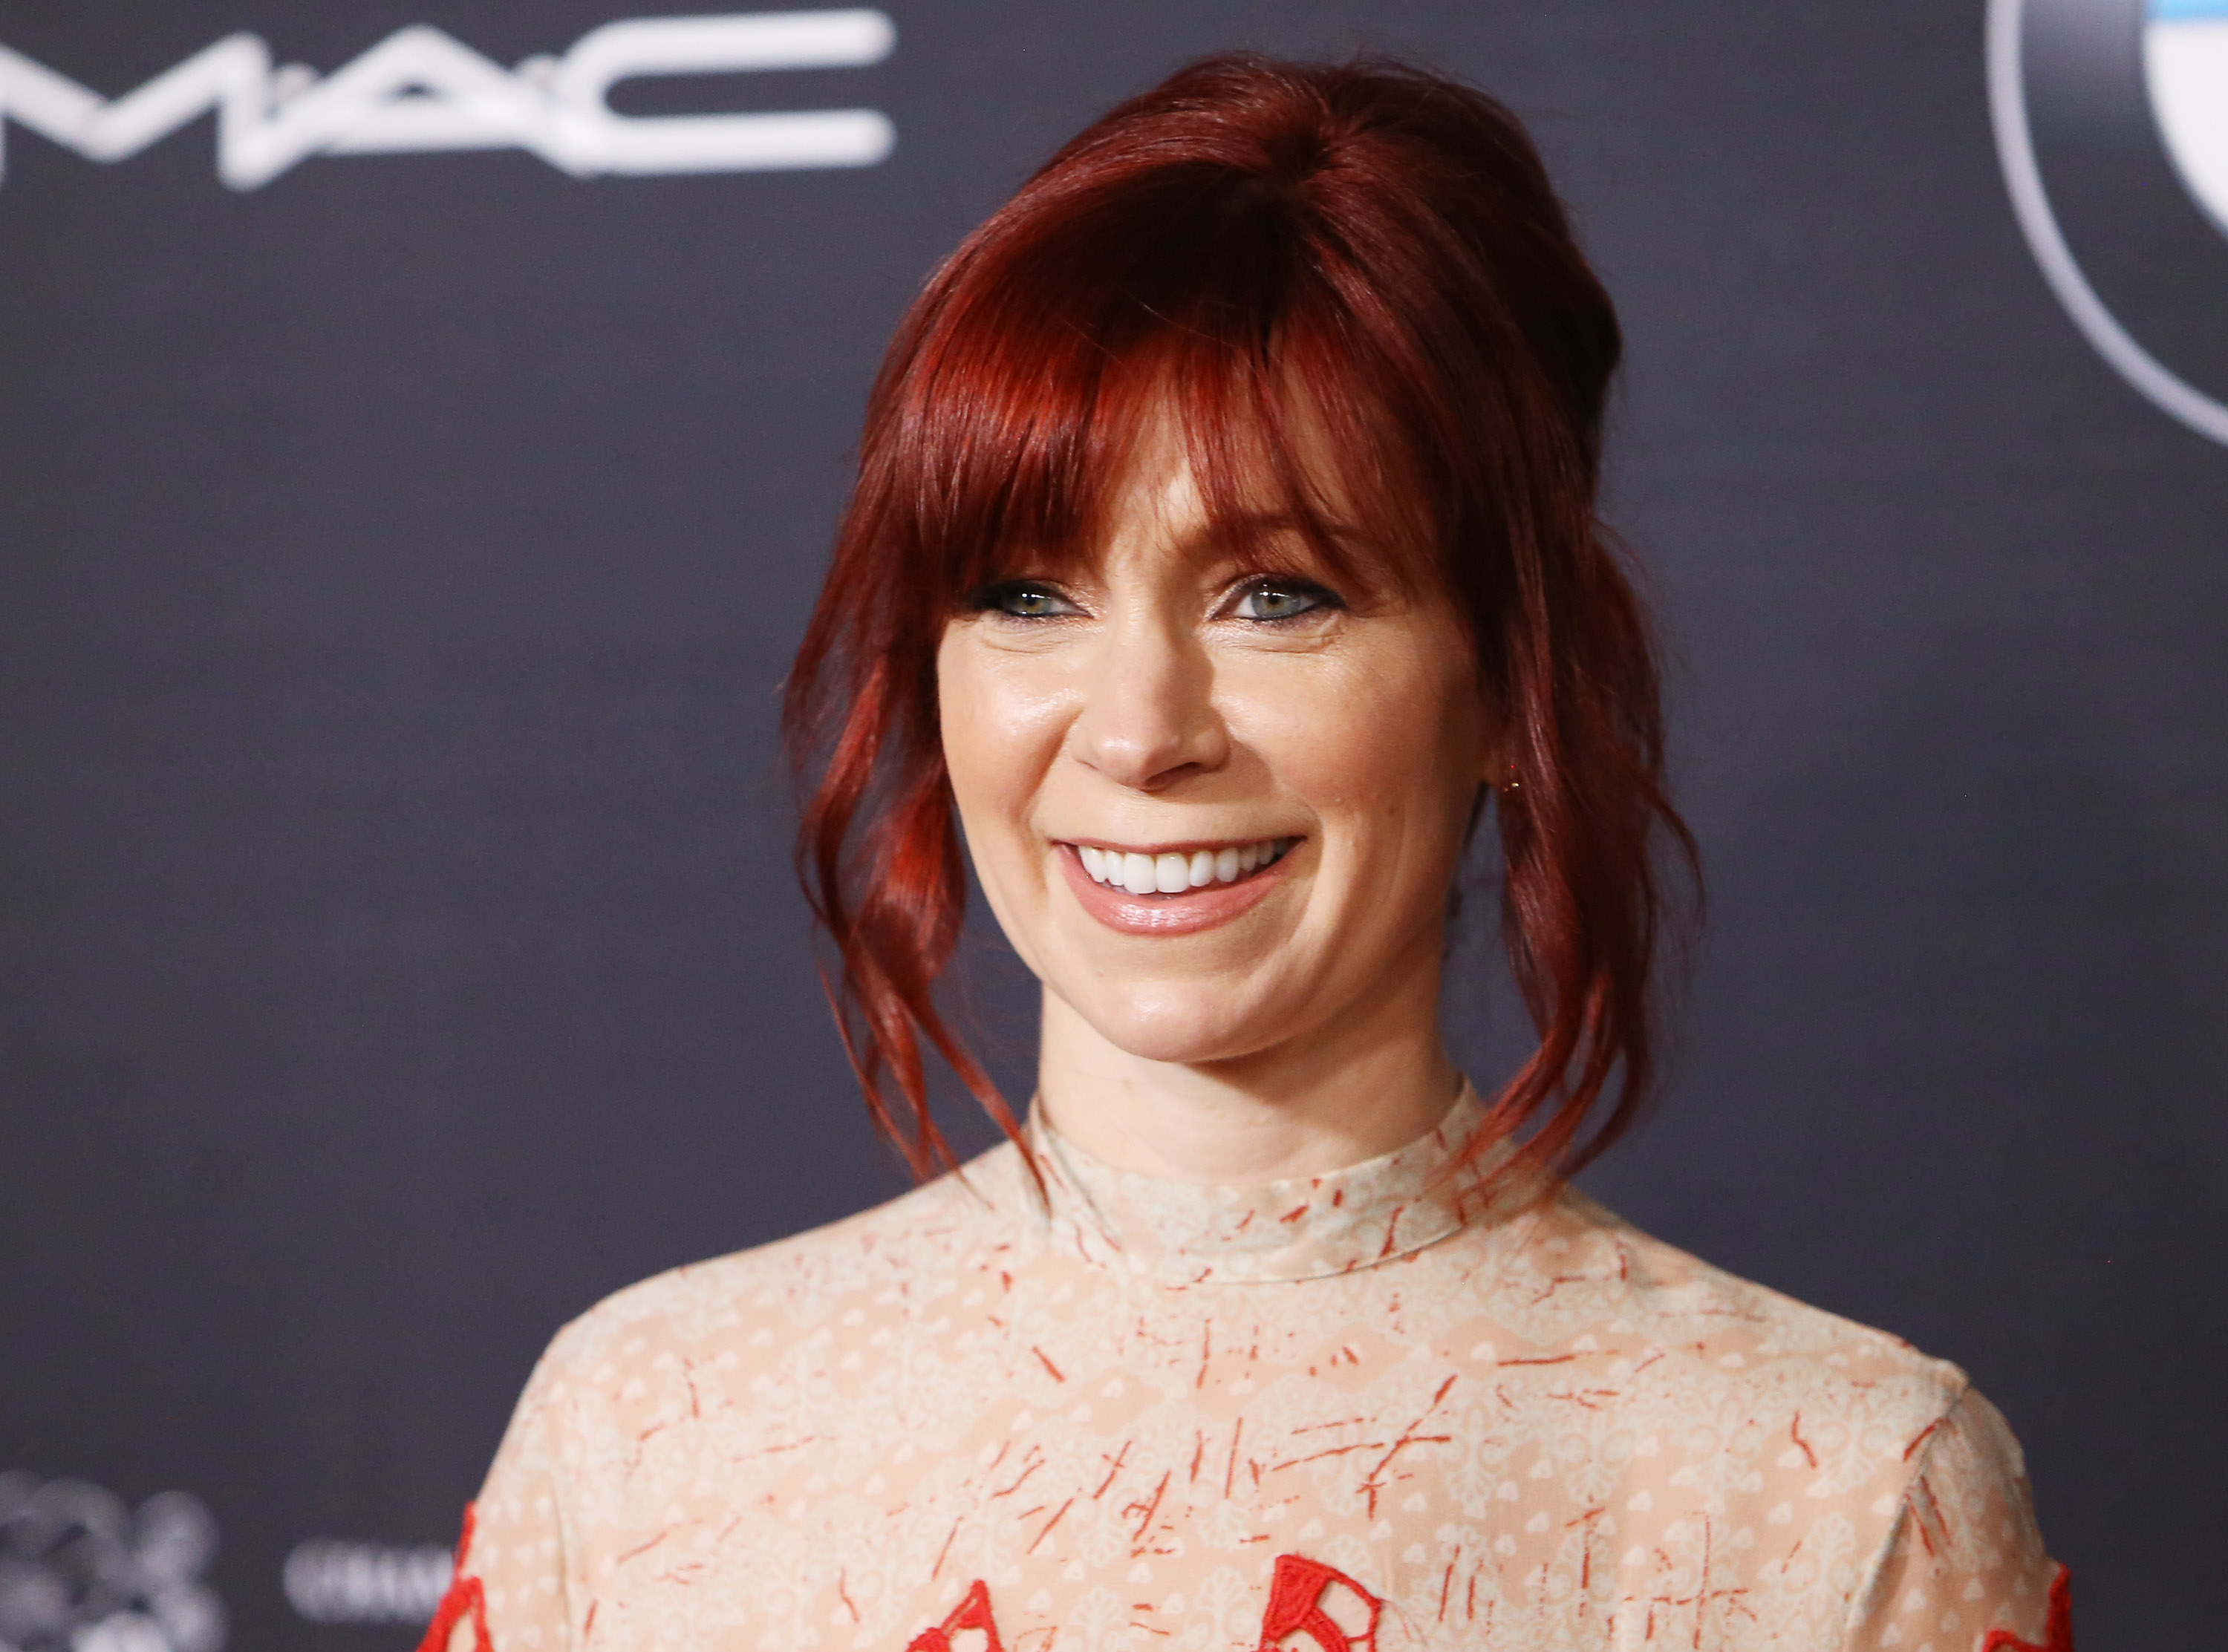 Carrie Preston arrives at the Ninth Annual Women In Film pre-Oscar Cocktail Party held at HYDE Sunset: Kitchen + Cocktails on February 26, 2016 in West Hollywood, California.